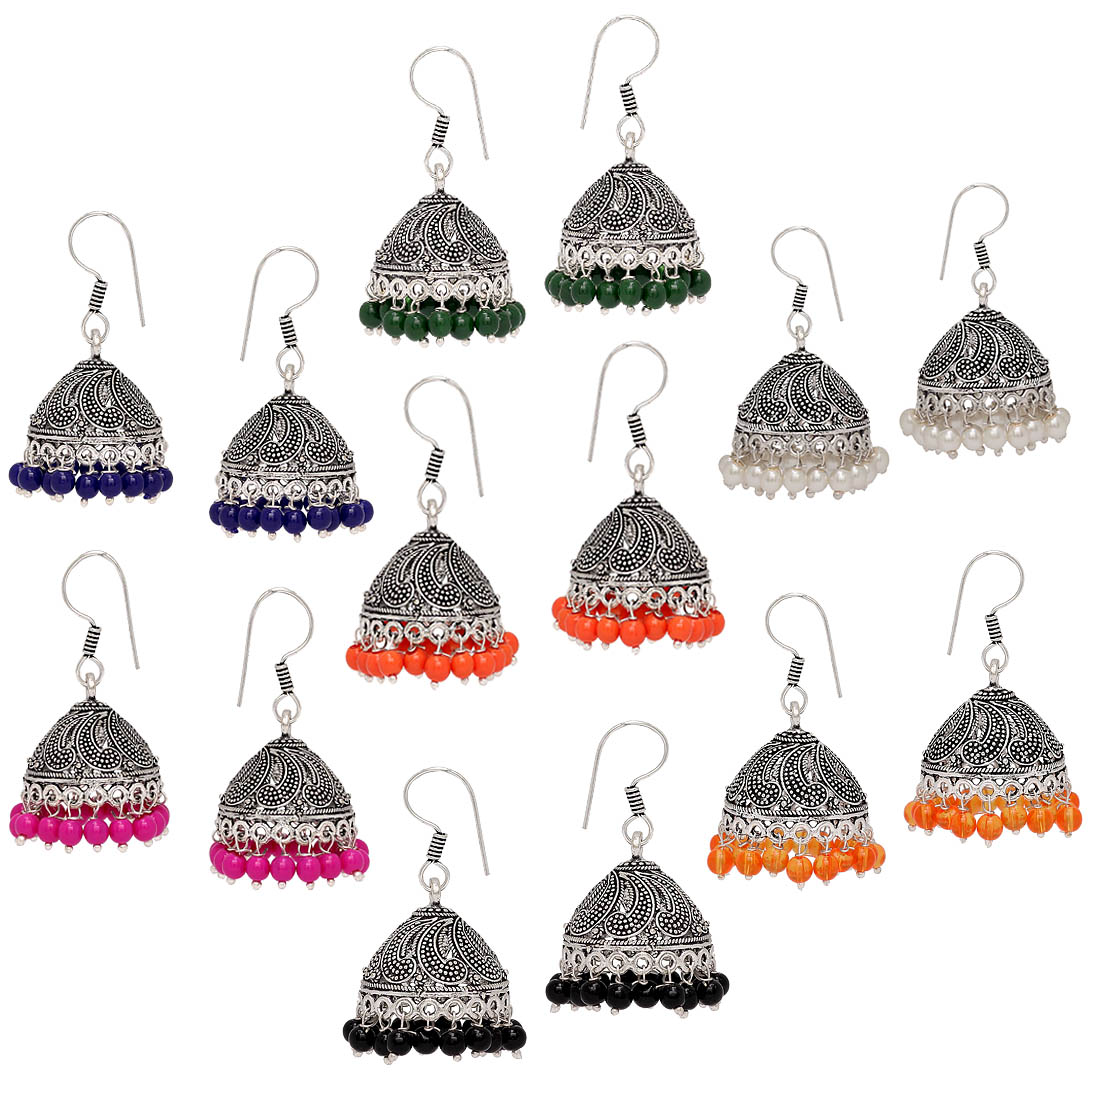 ca92d24b6b9 Oxidised silver plated multi color beads brass earrings combo set of 7  pairs jewellery